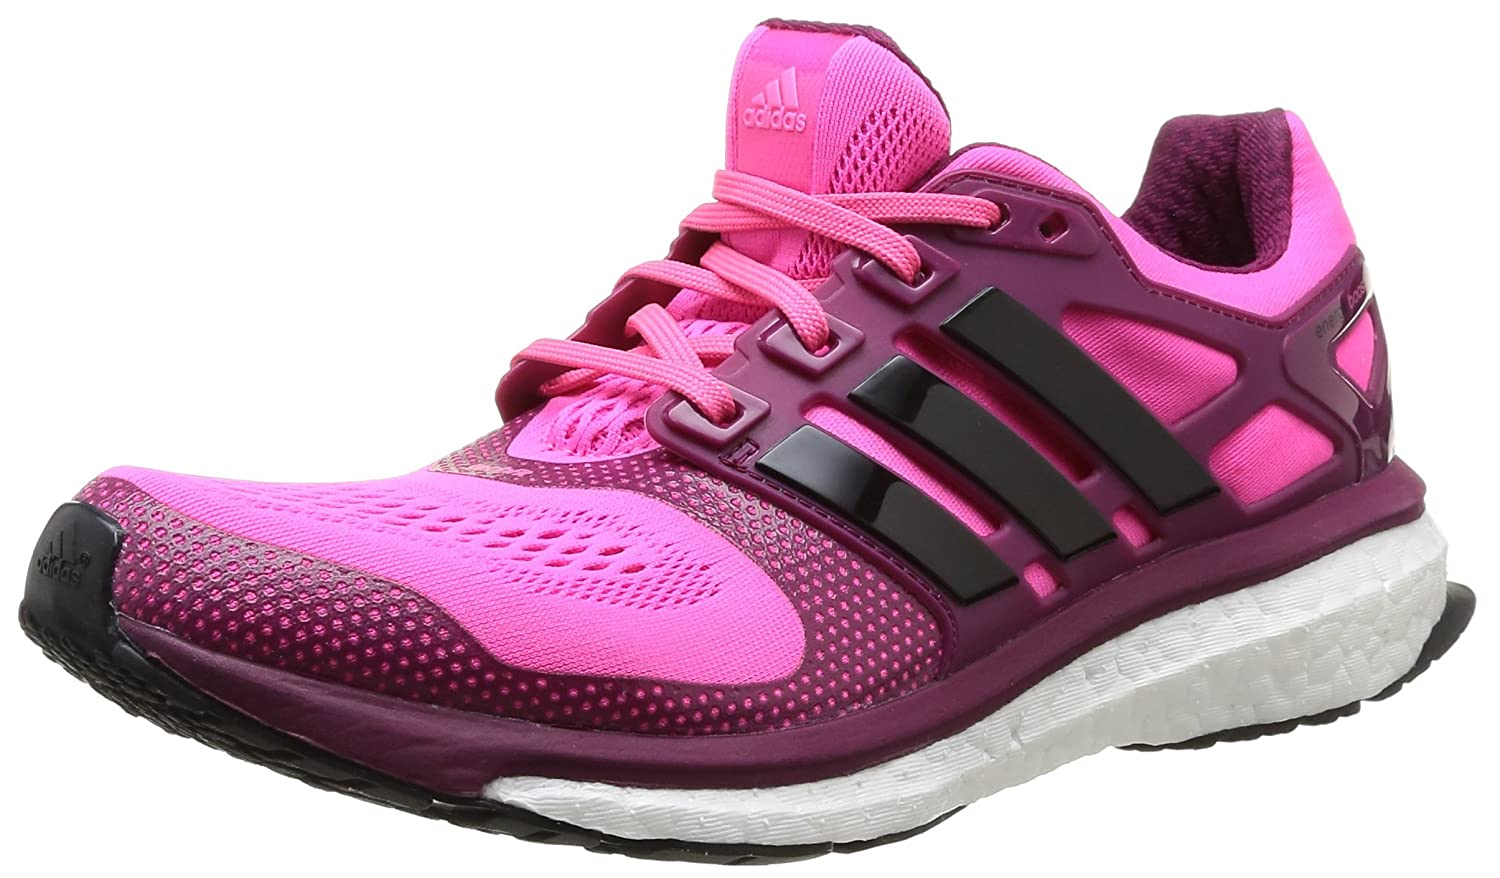 adidas boost mujer amazon